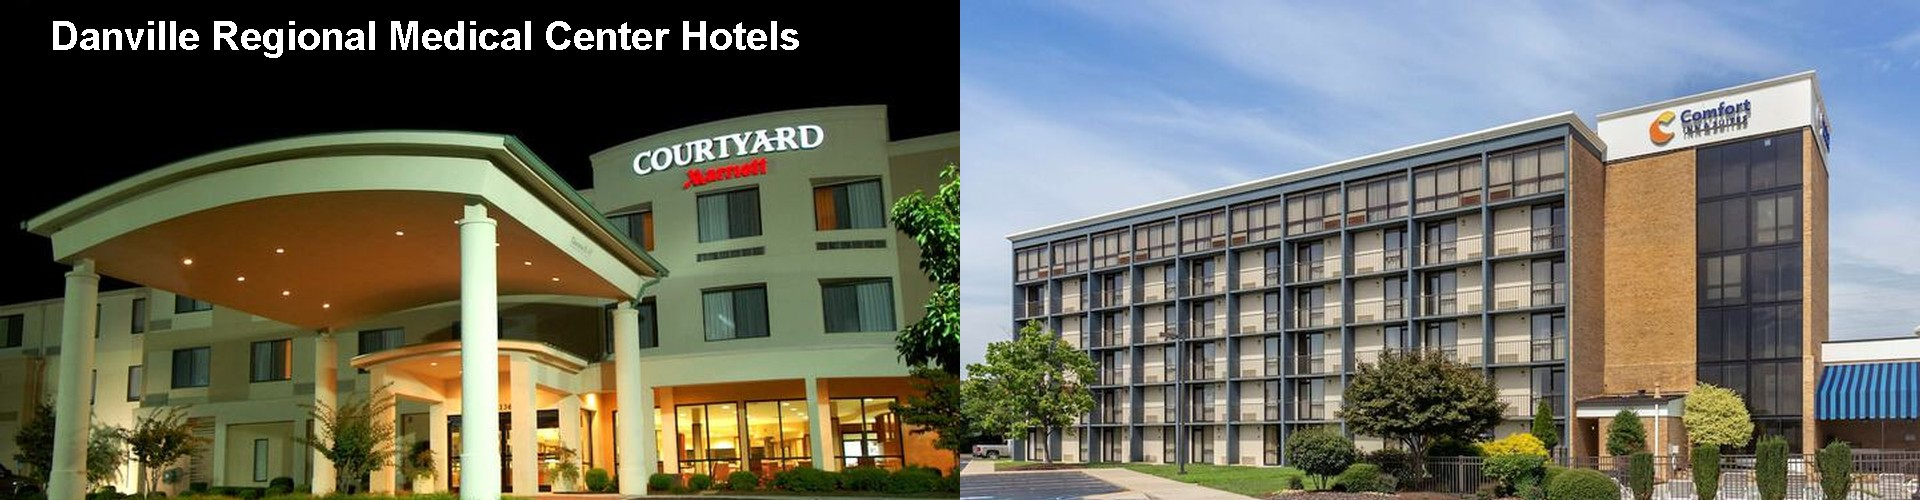 5 Best Hotels near Danville Regional Medical Center